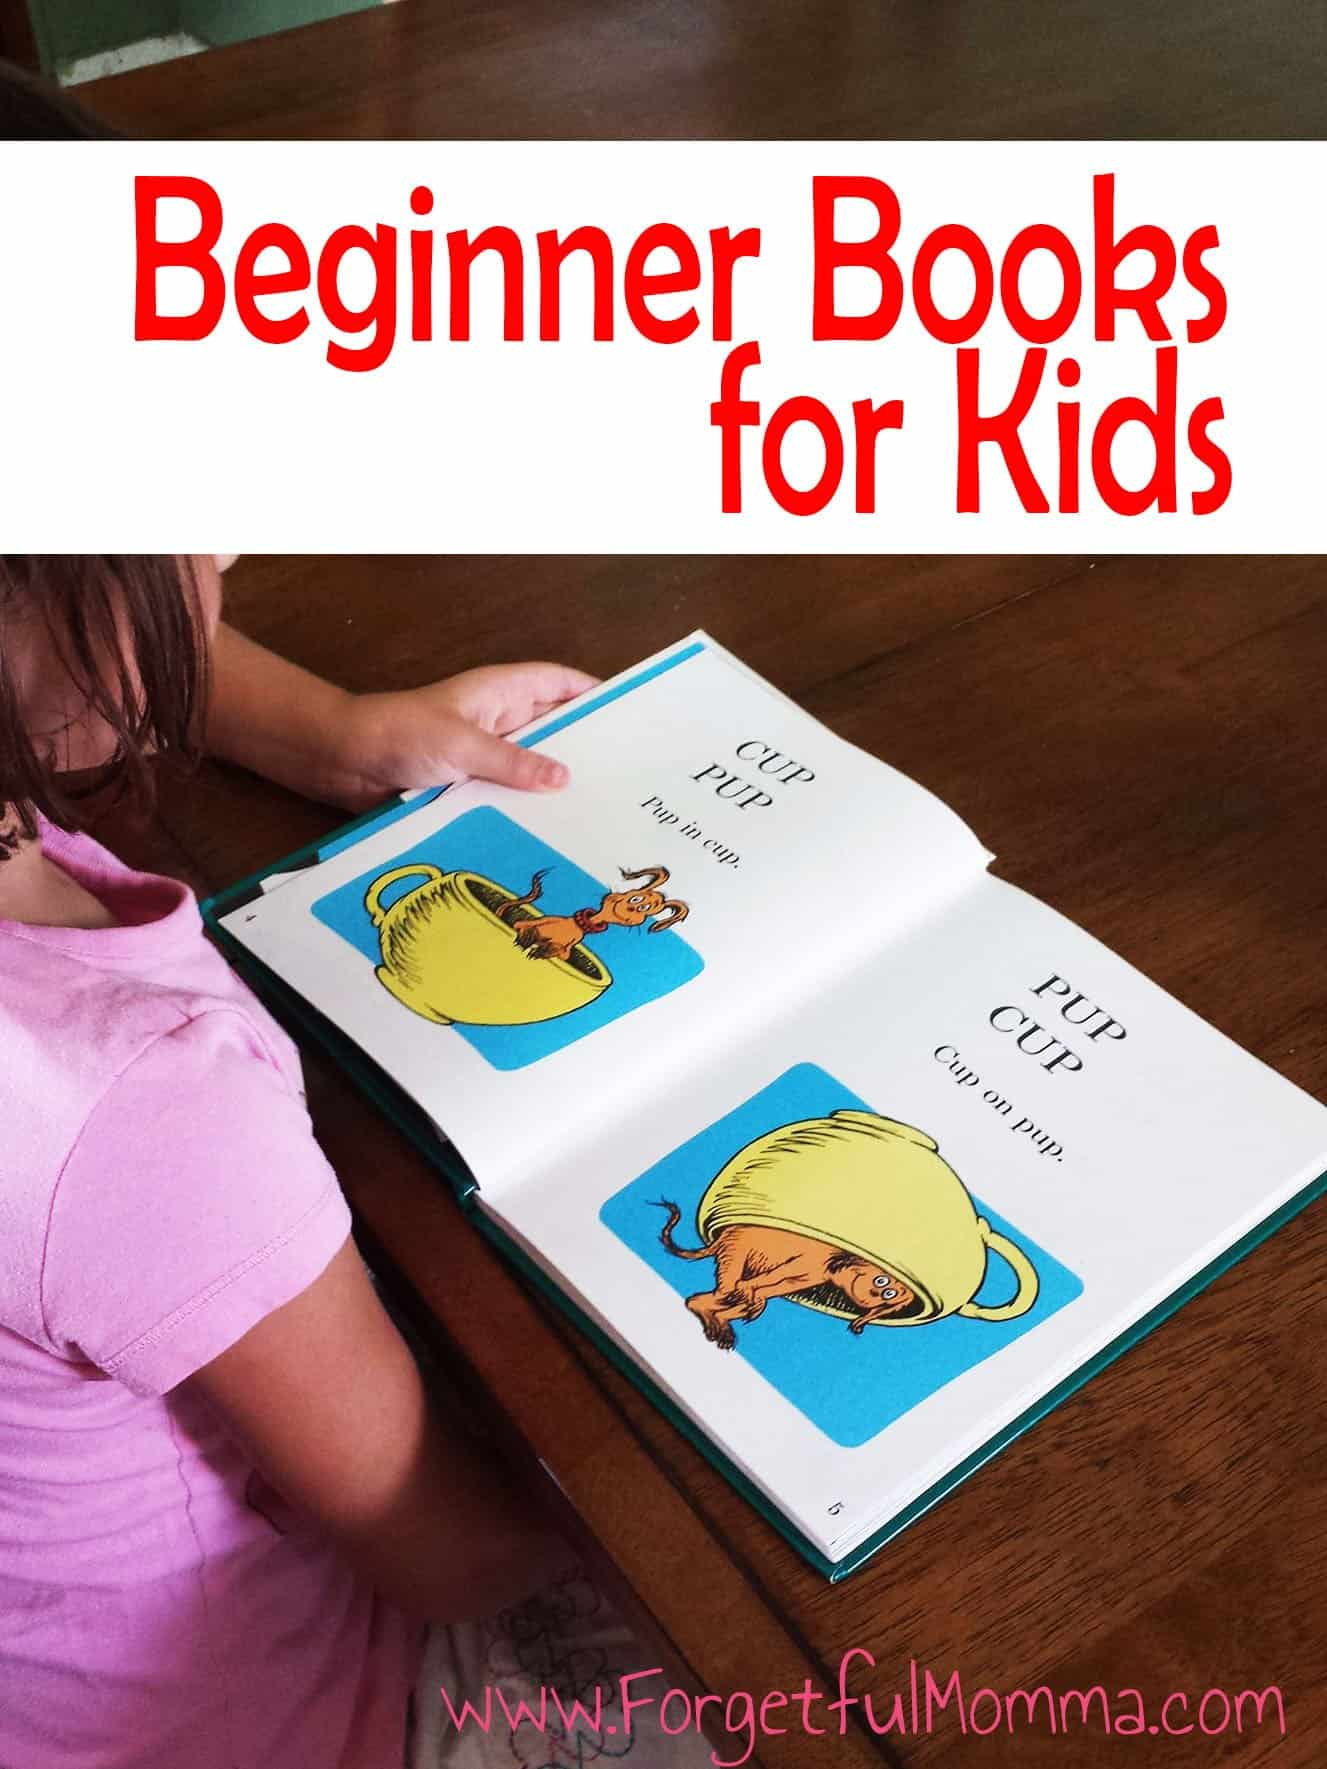 Beginner Books for Kids - I Can Read Beginner Books - Child reading